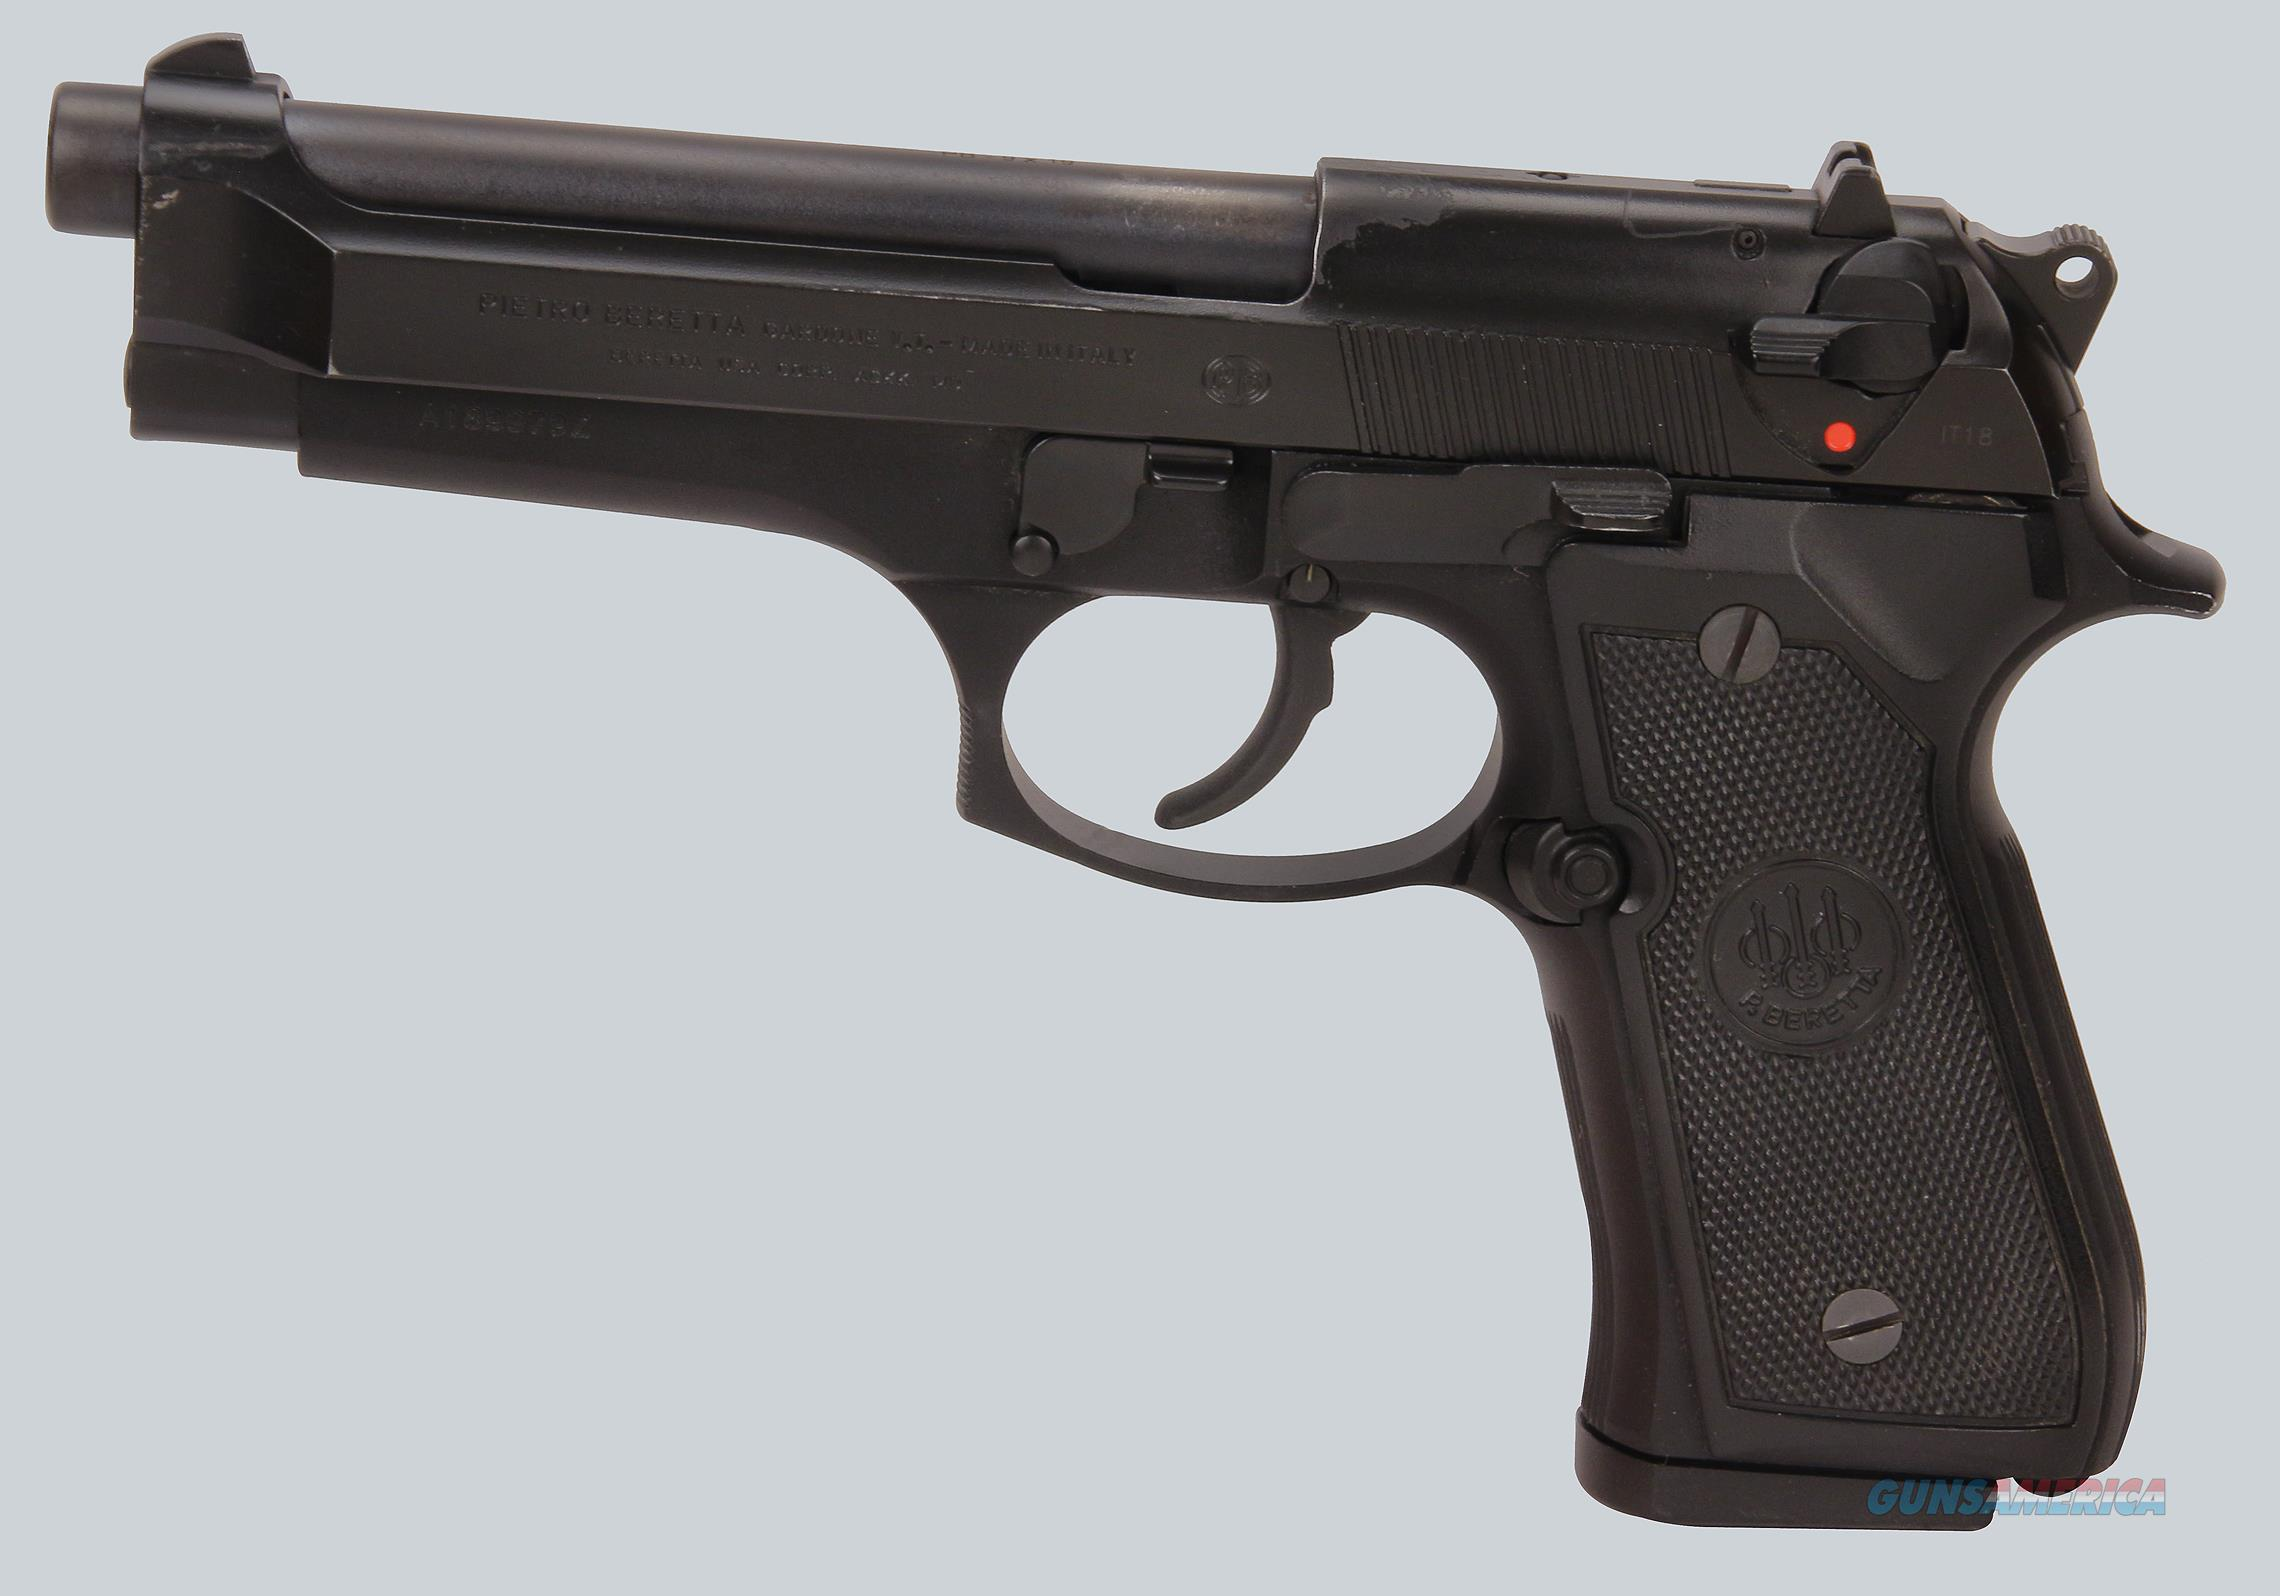 Beretta 9mm 92FS Pistol  Guns > Pistols > Beretta Pistols > Model 92 Series